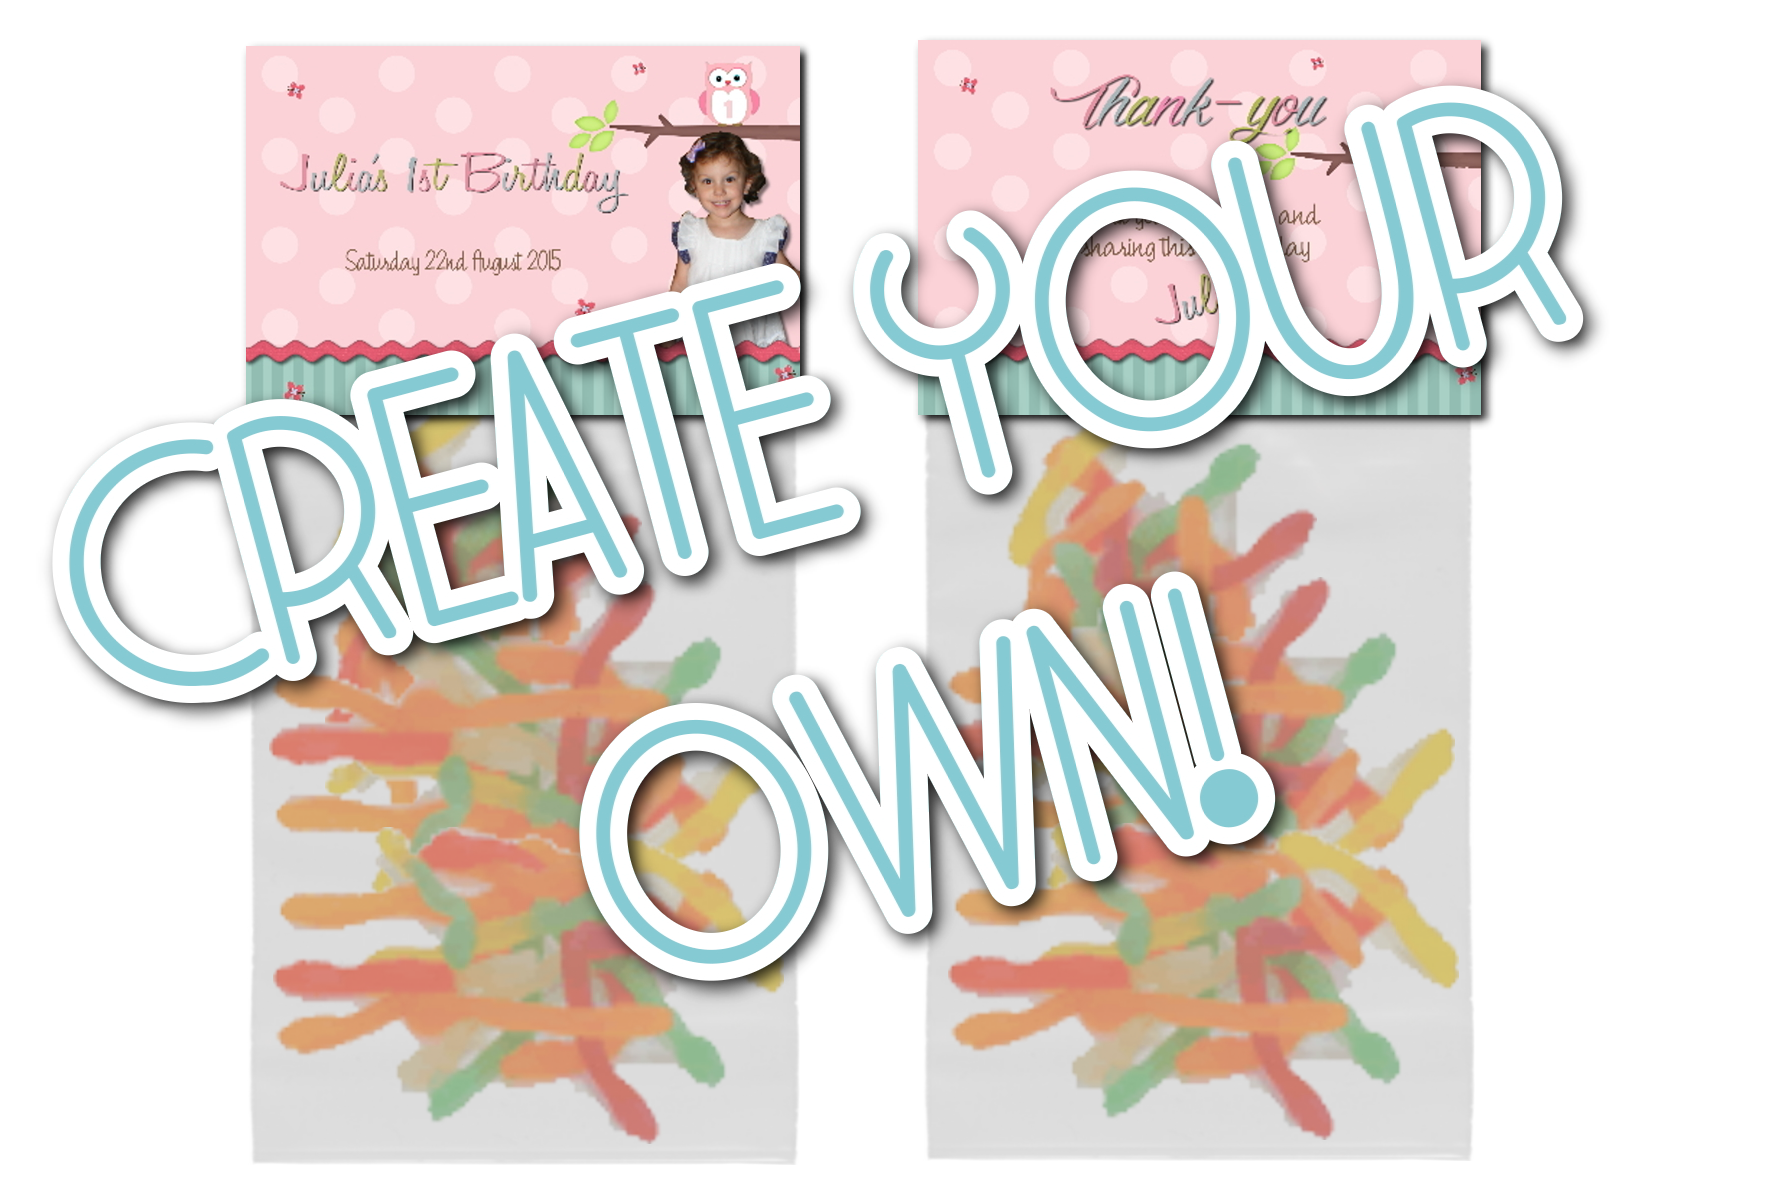 ced3a1f0653 2. Create Your Own! Lolly Bag Topper (Bag Included)